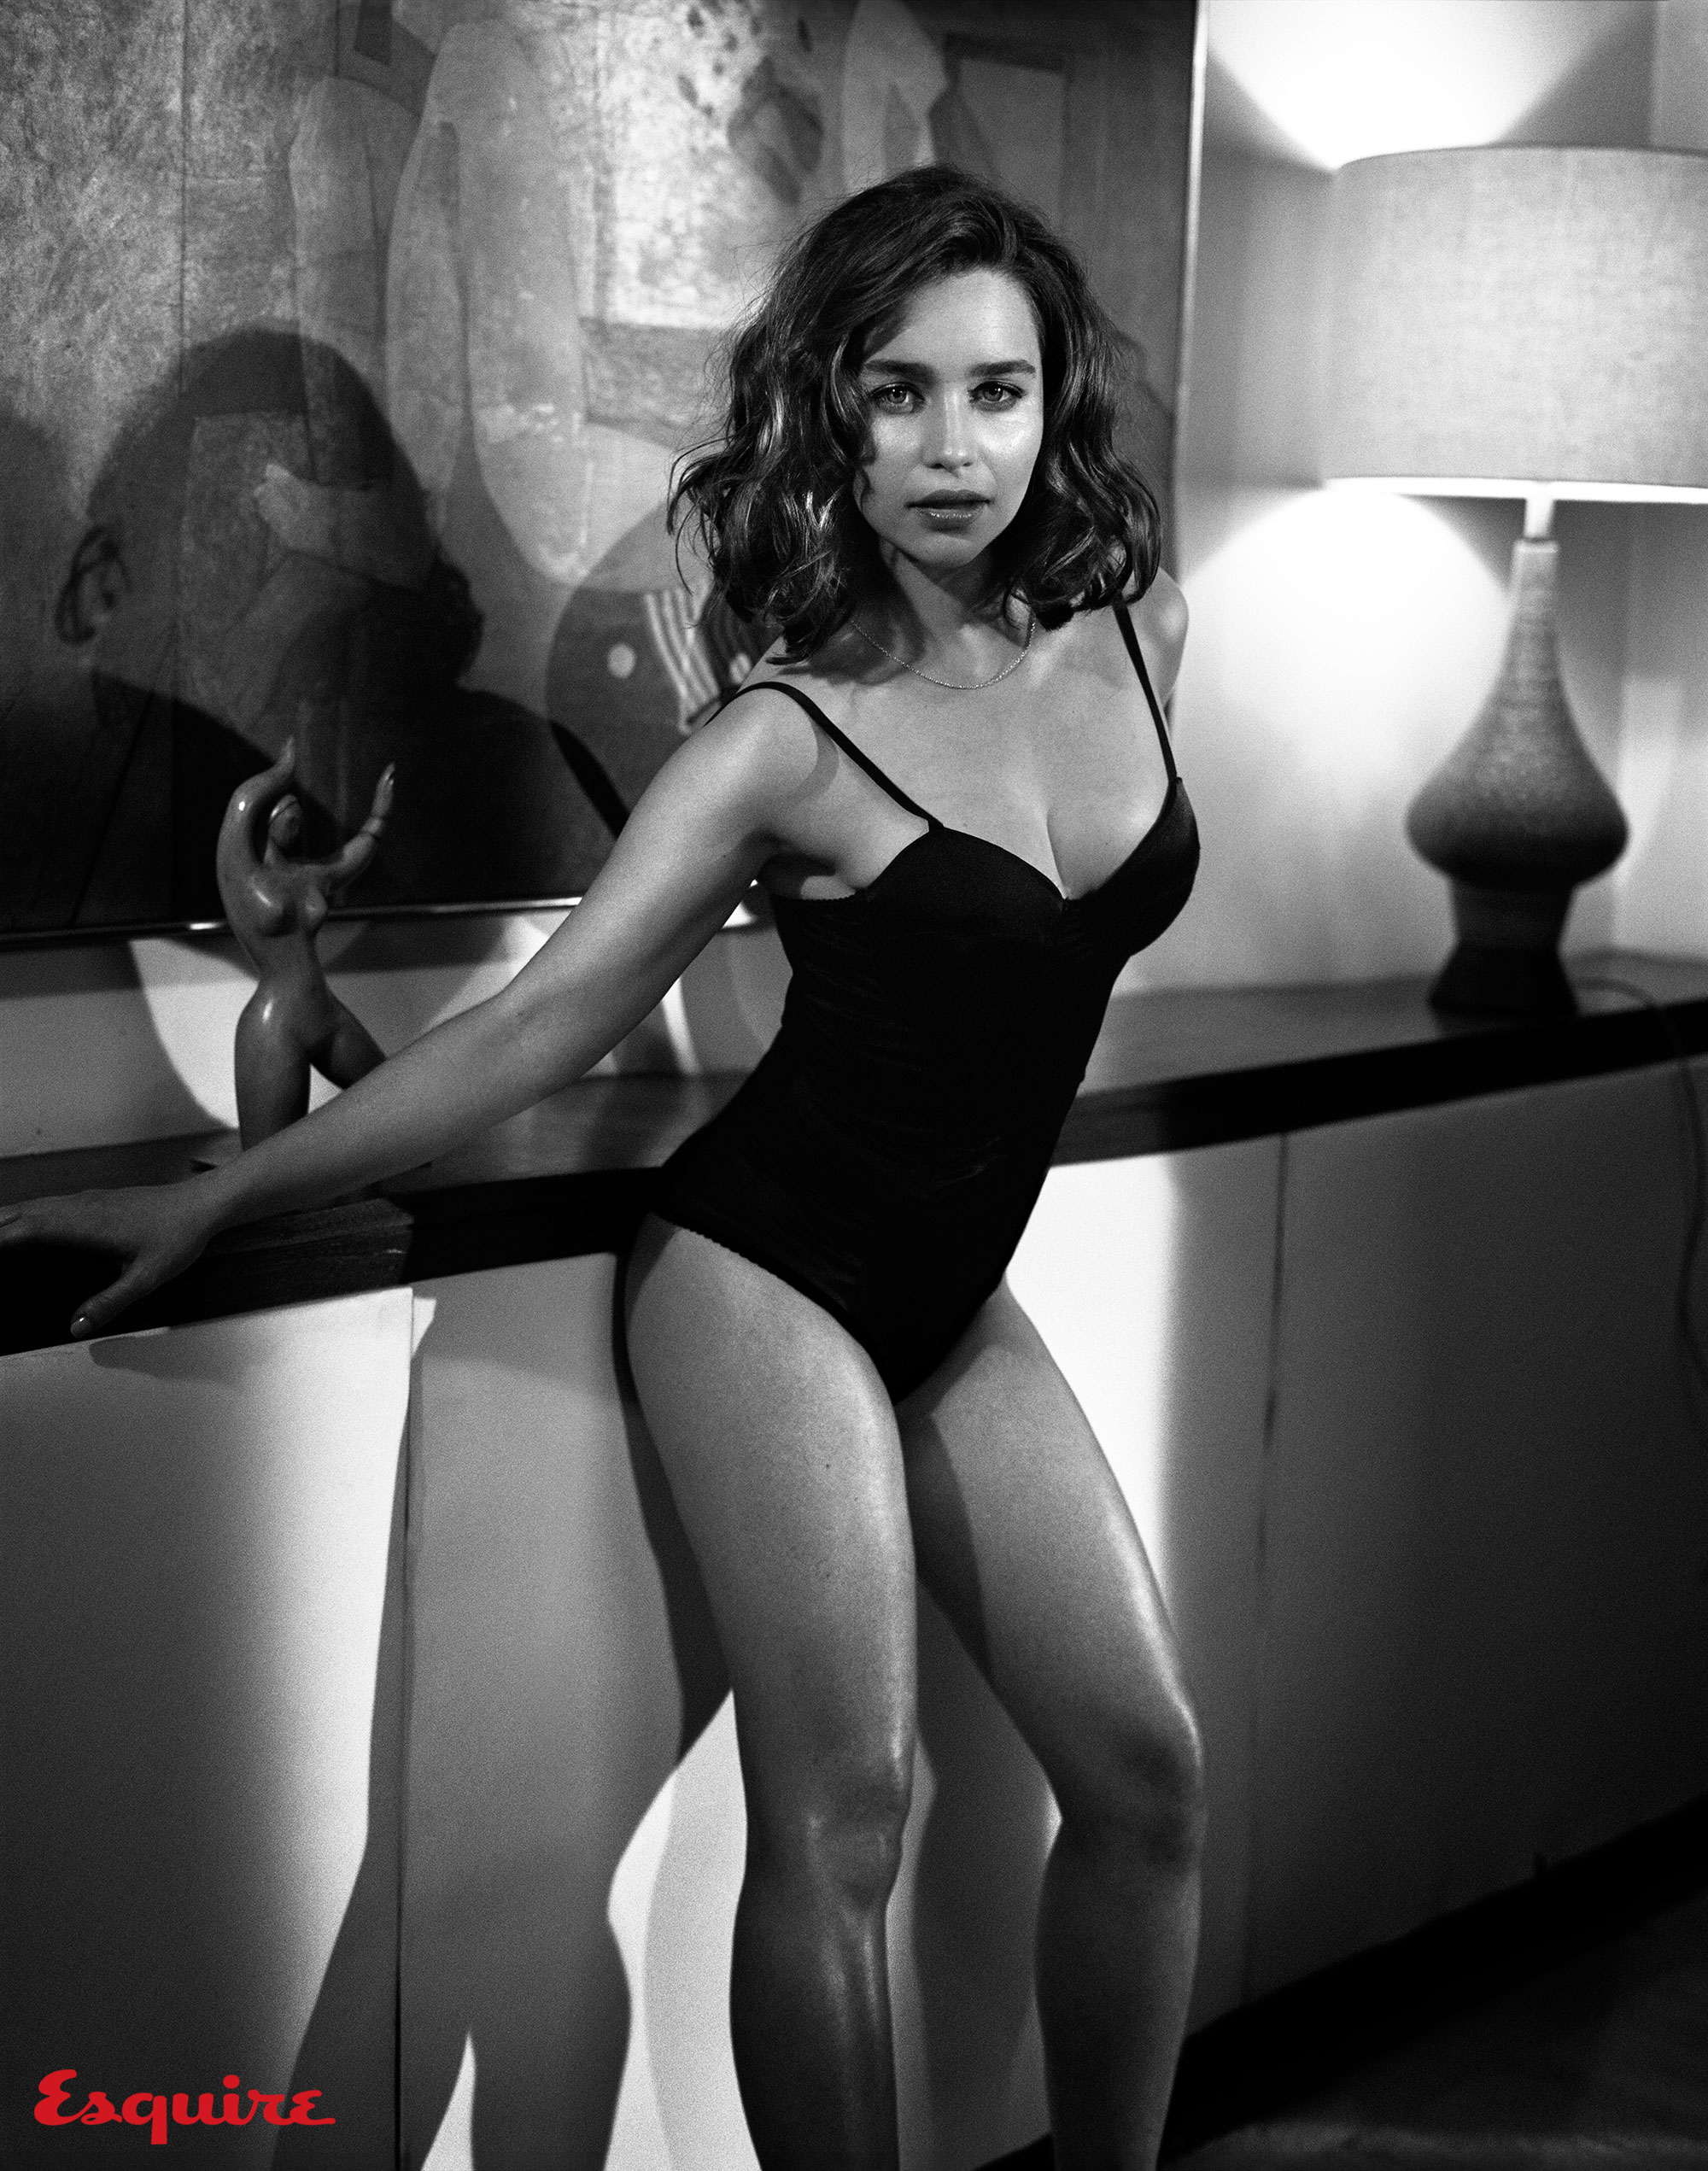 HIGH RES Esquire emilia-clarke-sexiest-woman-alive-2015 2